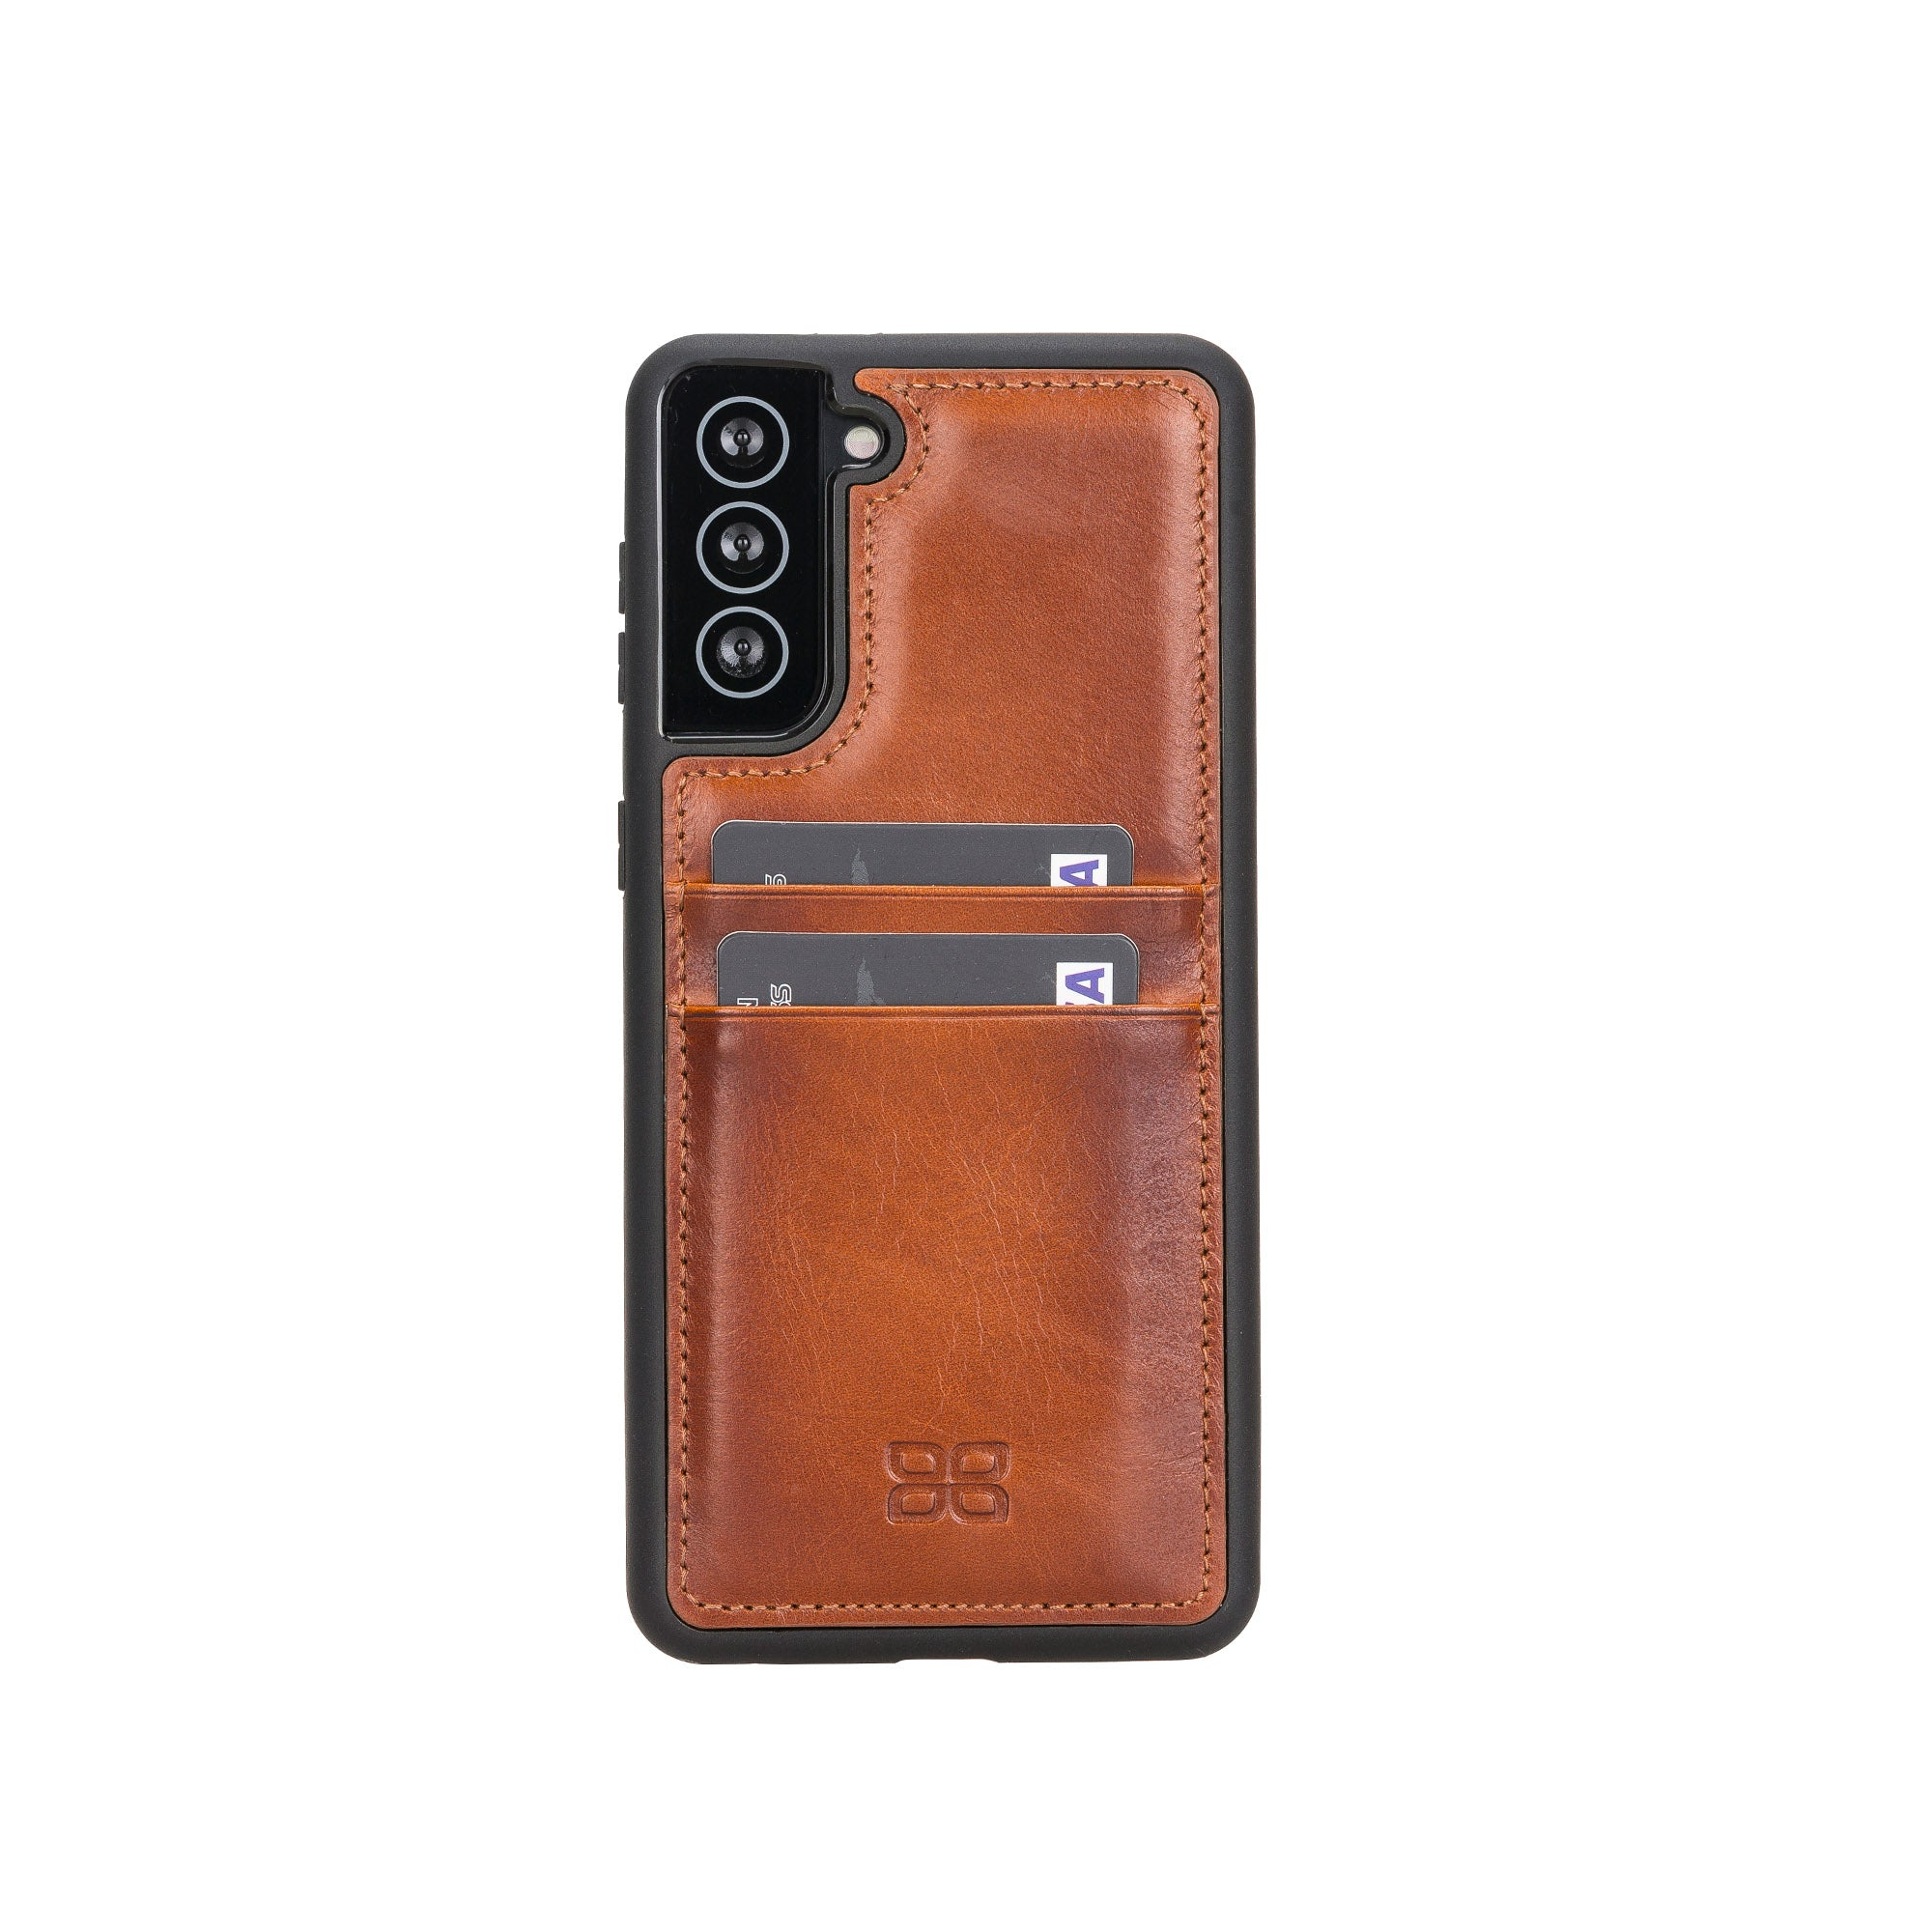 "Flex Cover Leather Back Case with Card Holder for Samsung Galaxy S21 Plus 5G (6.7"") - EFFECT BROWN - saracleather"